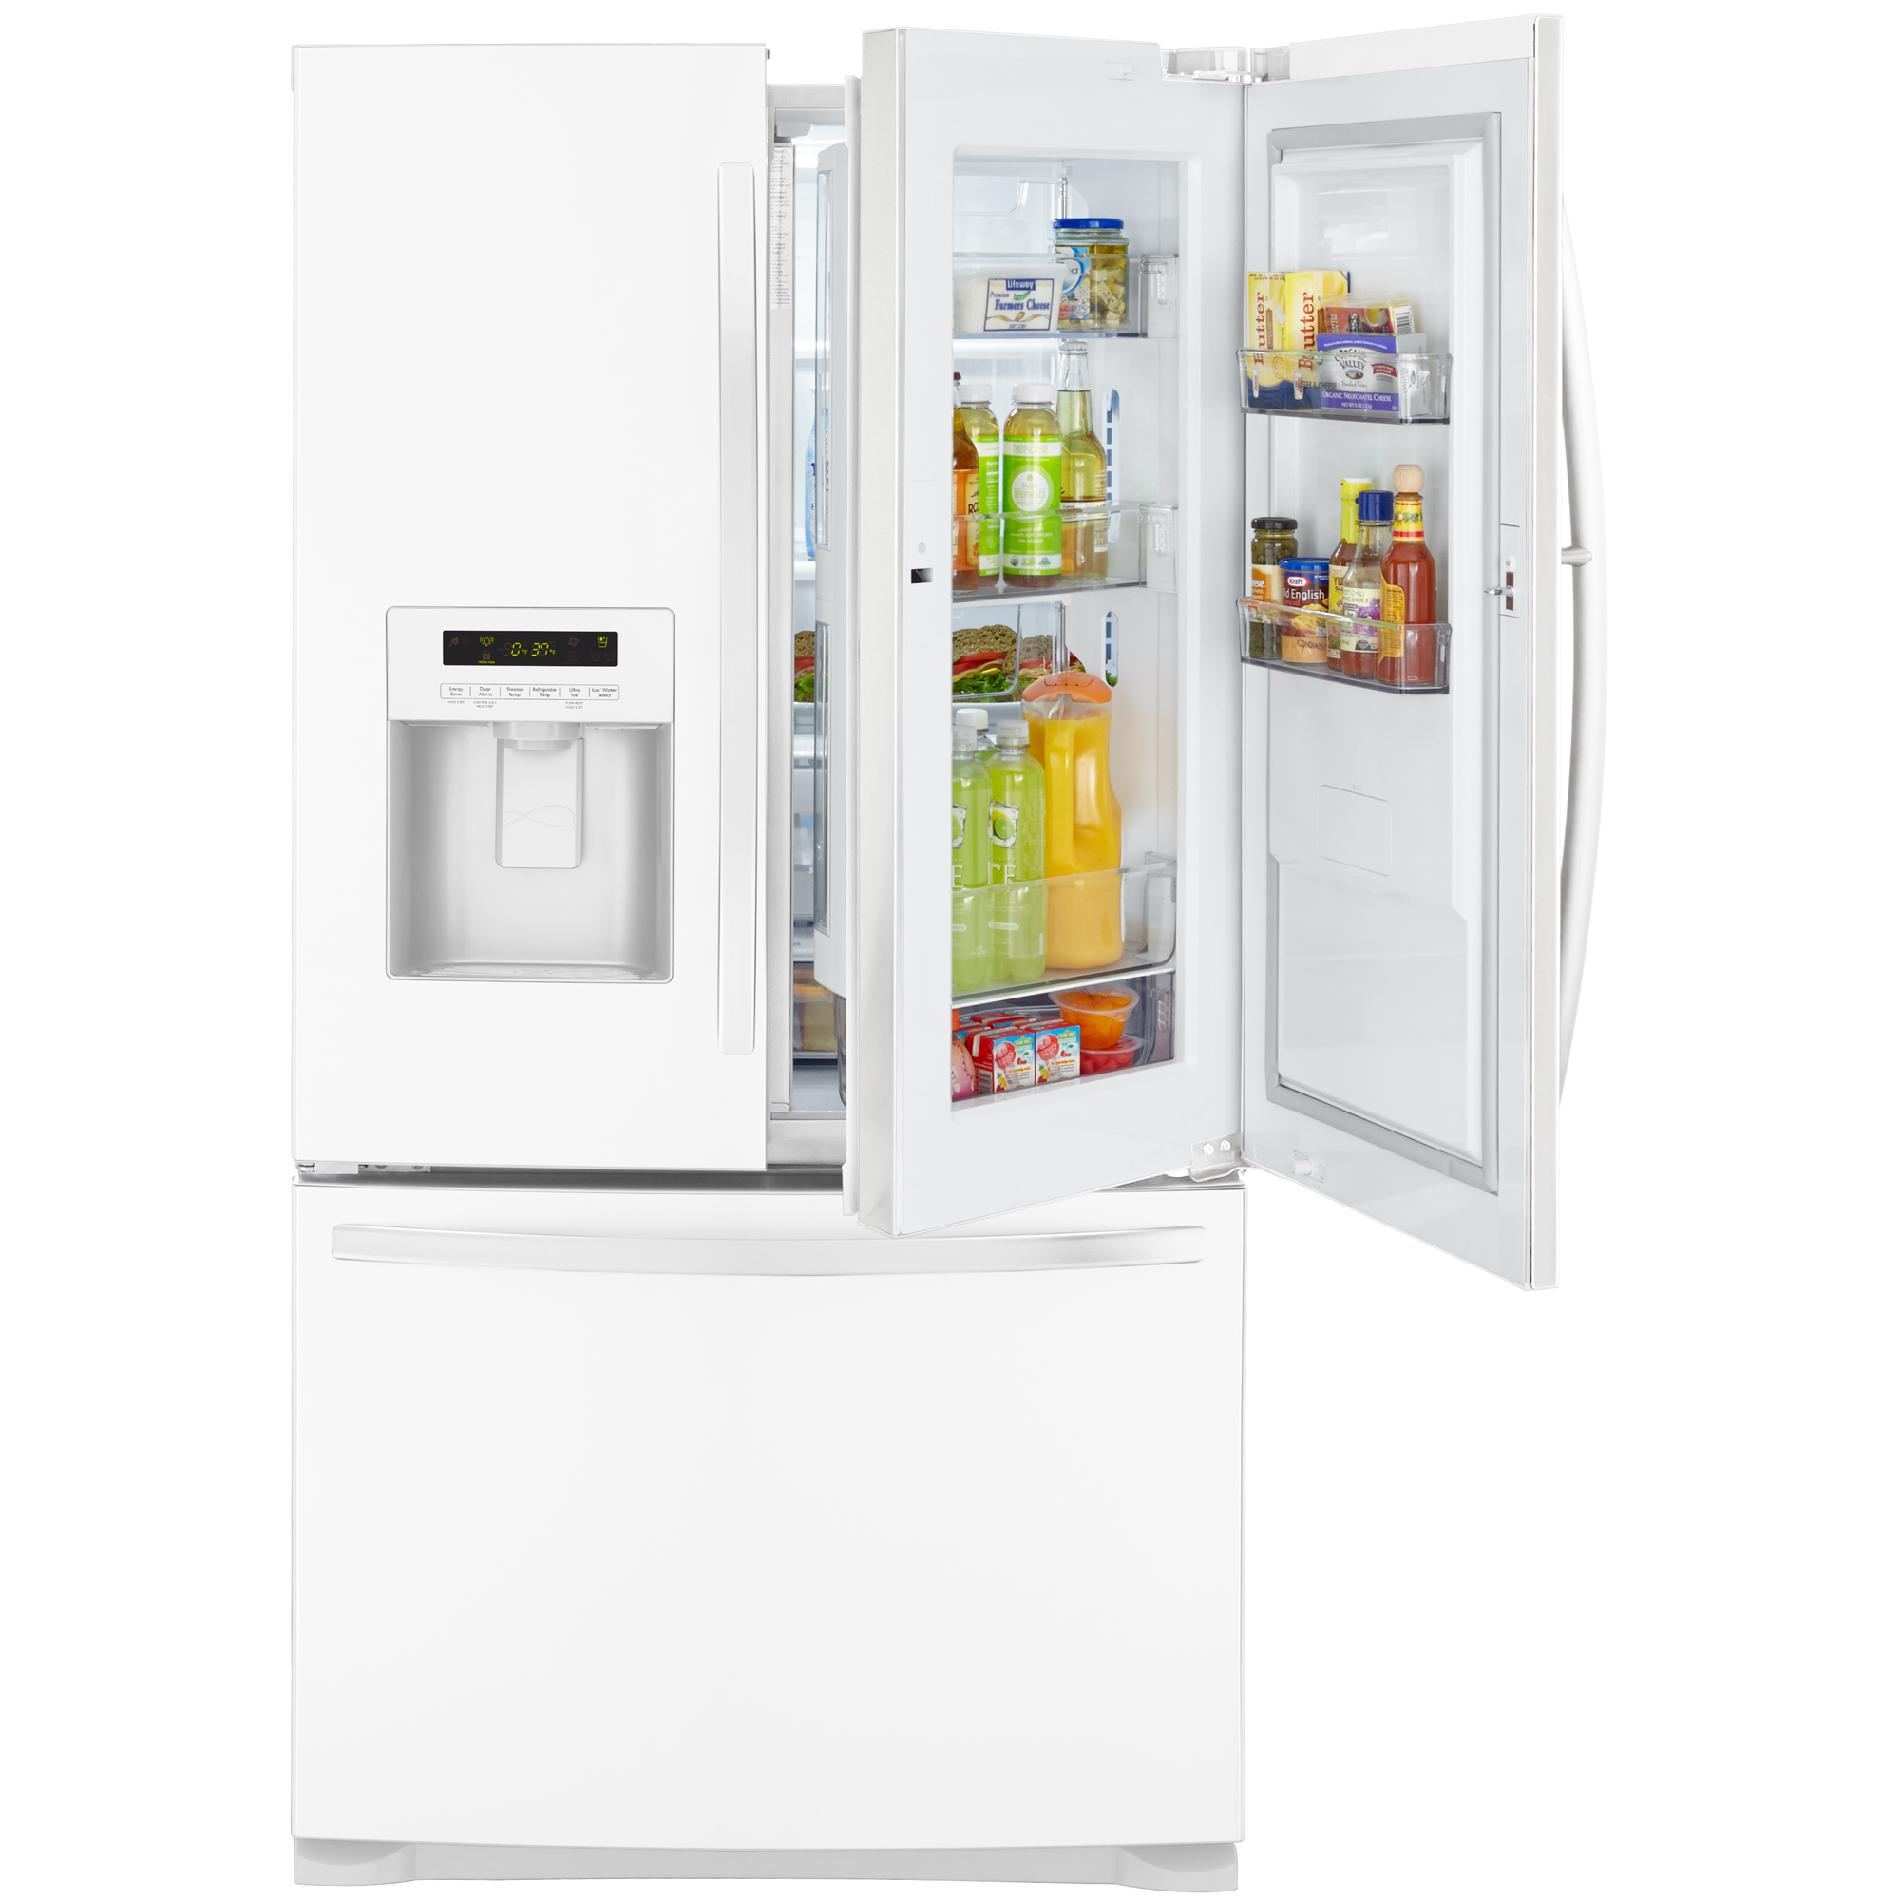 Kmart Freezer Kenmore Bottom Drawer Freezer Refrigerator Kmart